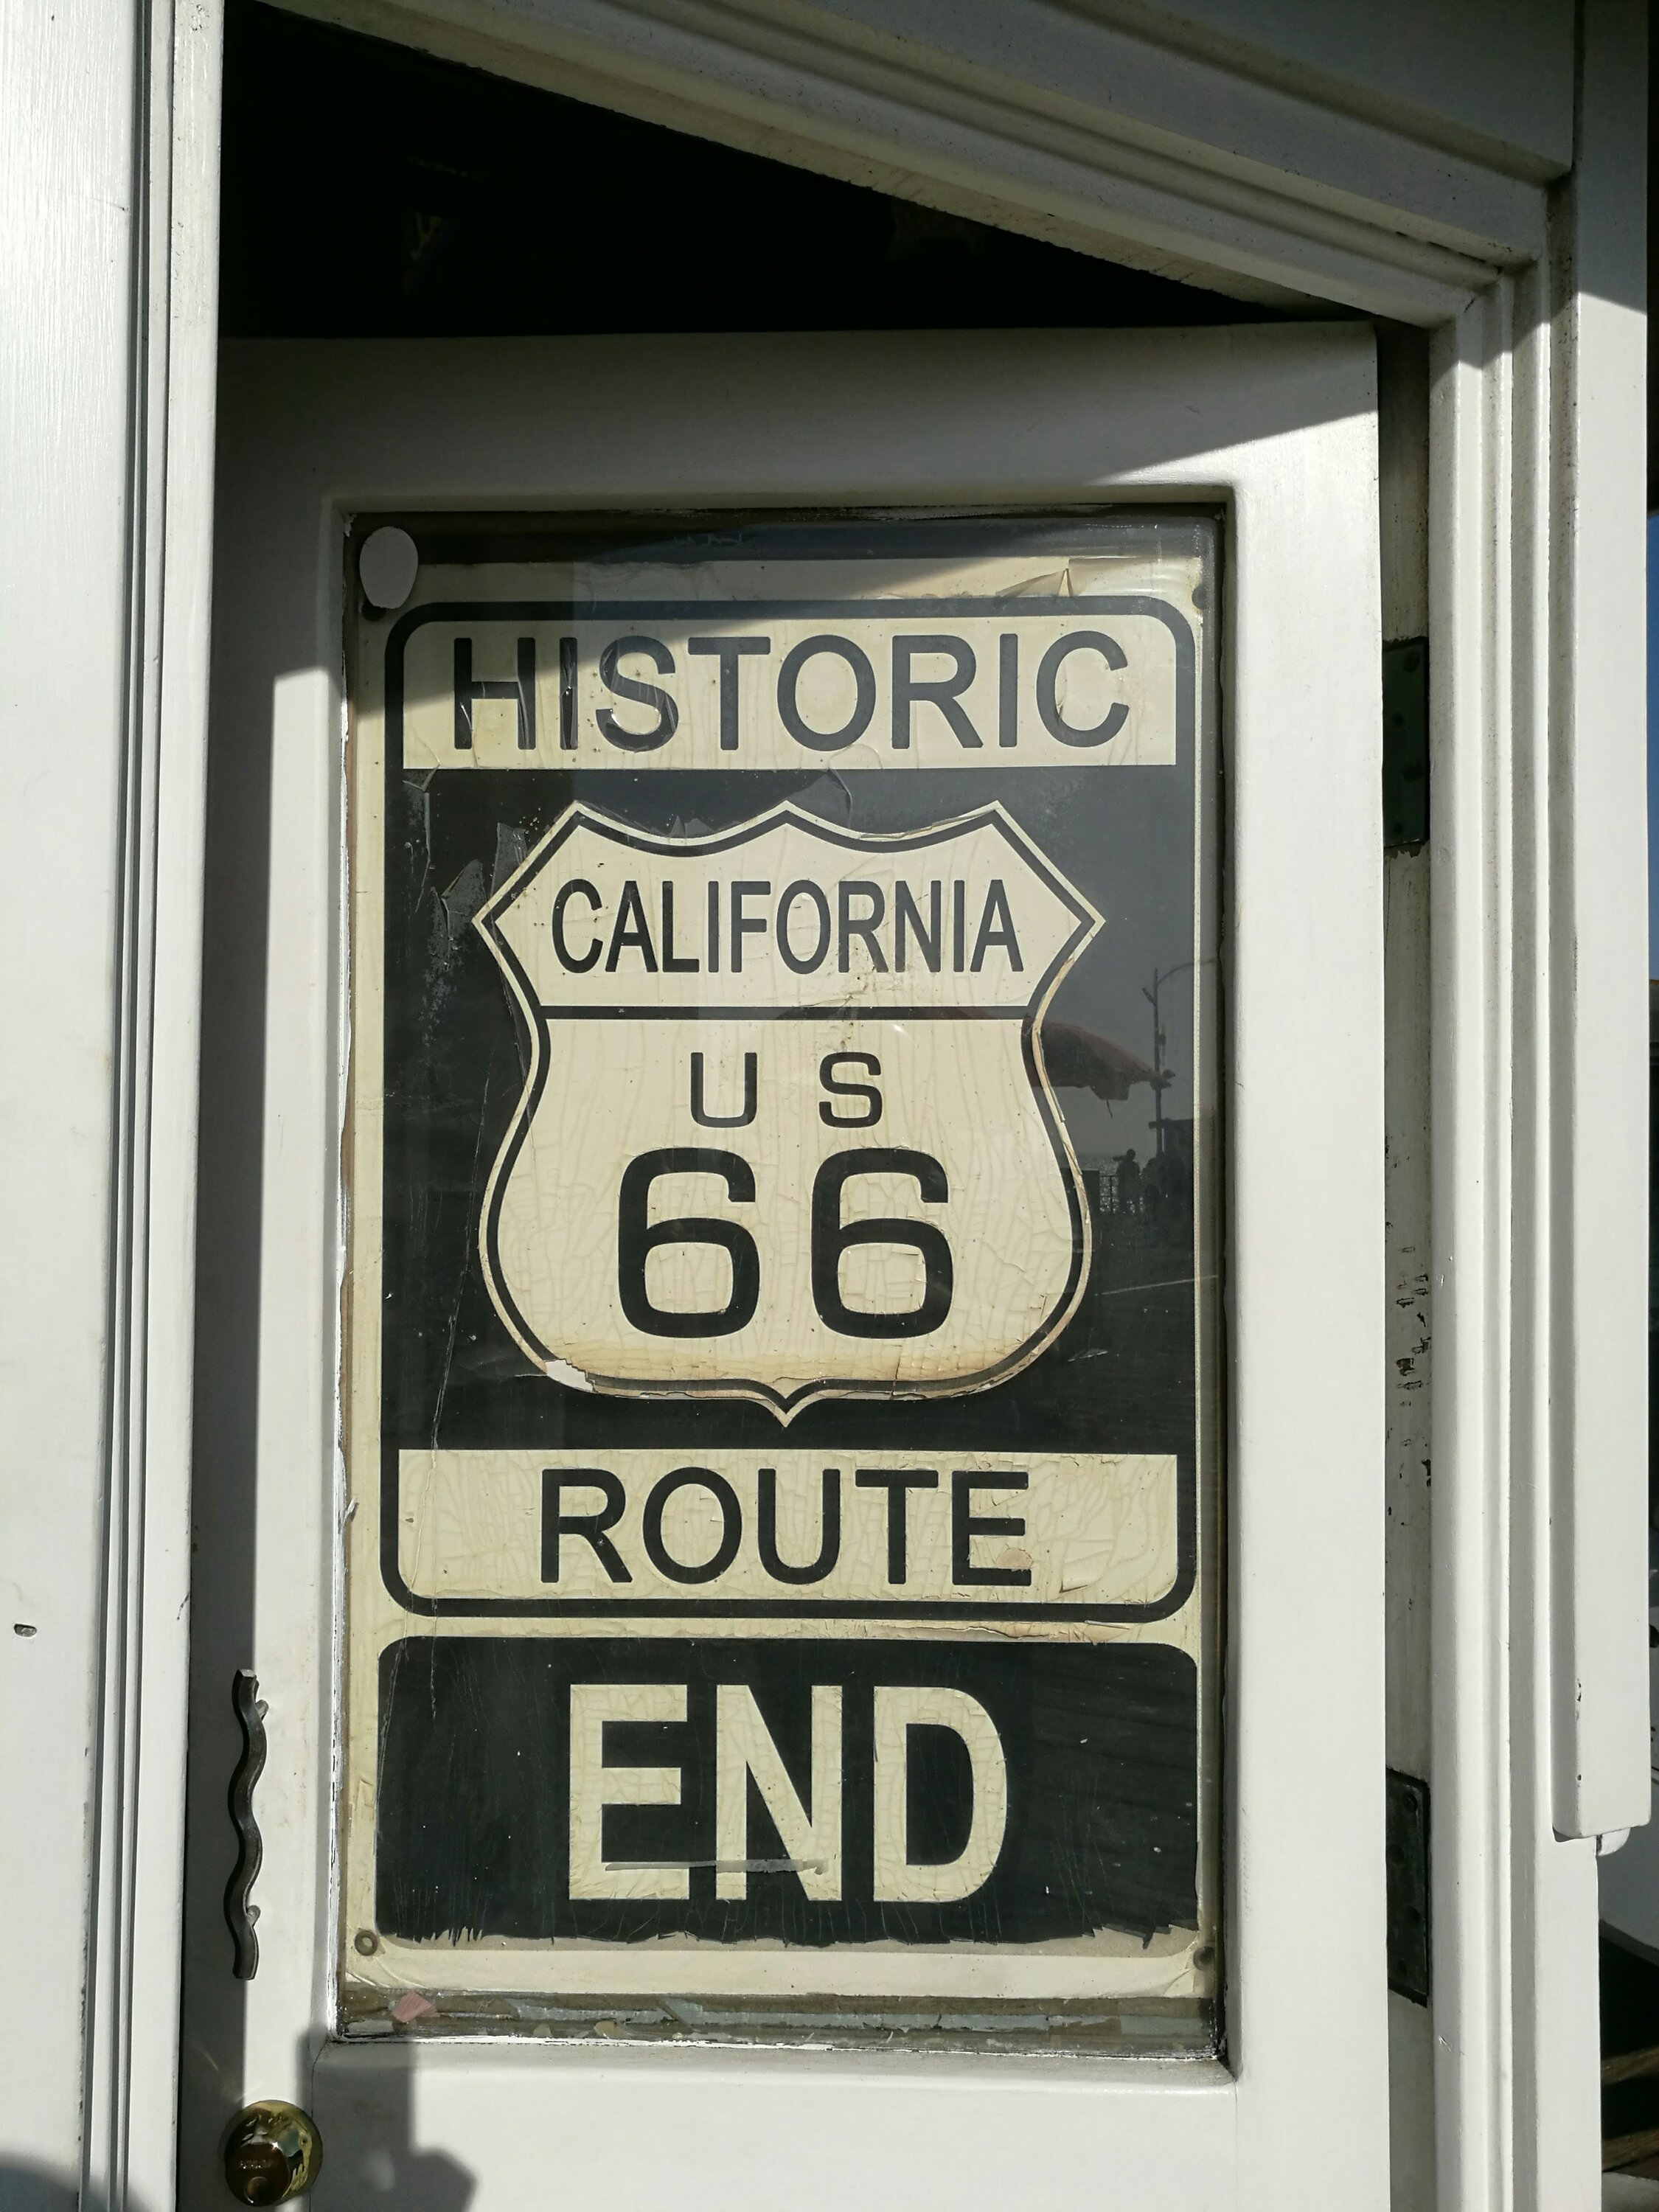 End of Historic 66